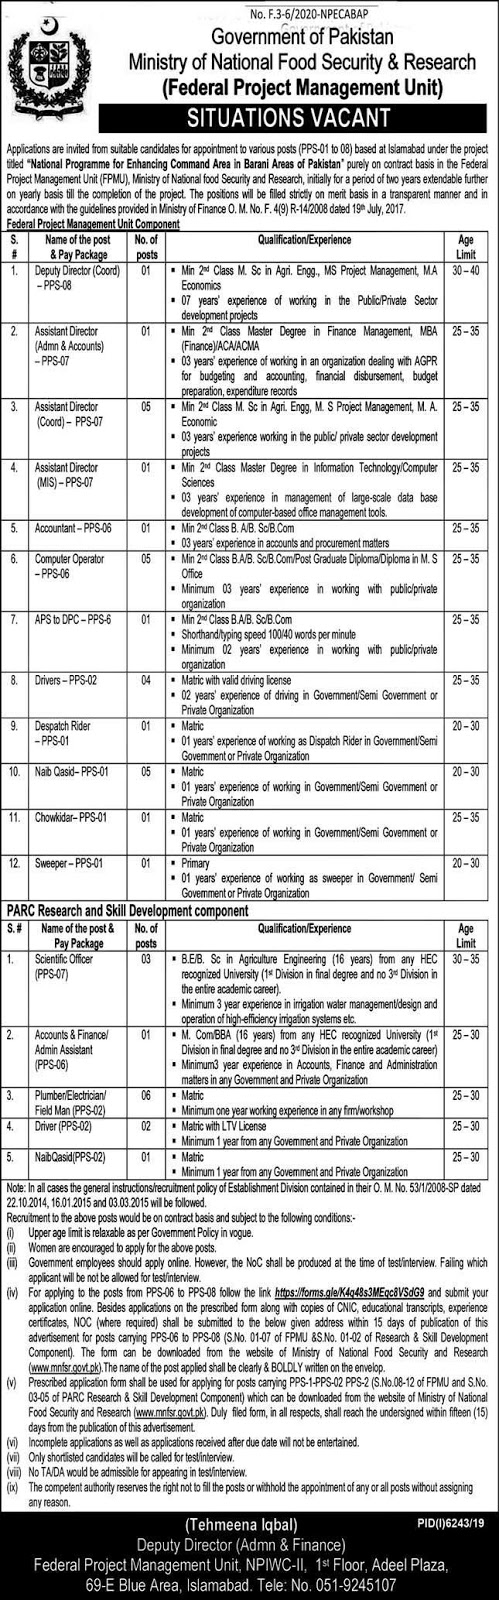 Ministry of National Food Security & Research Islamabad Job